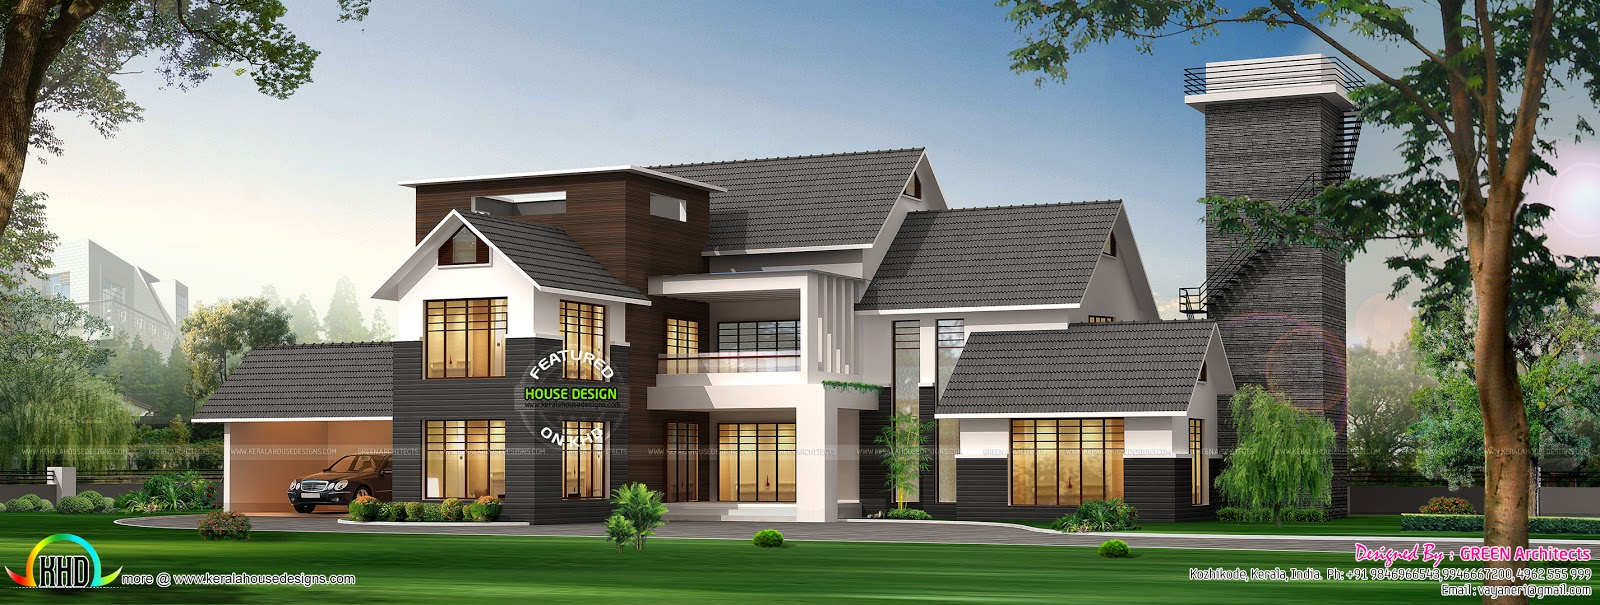 fusion type home design kerala home design and floor plans